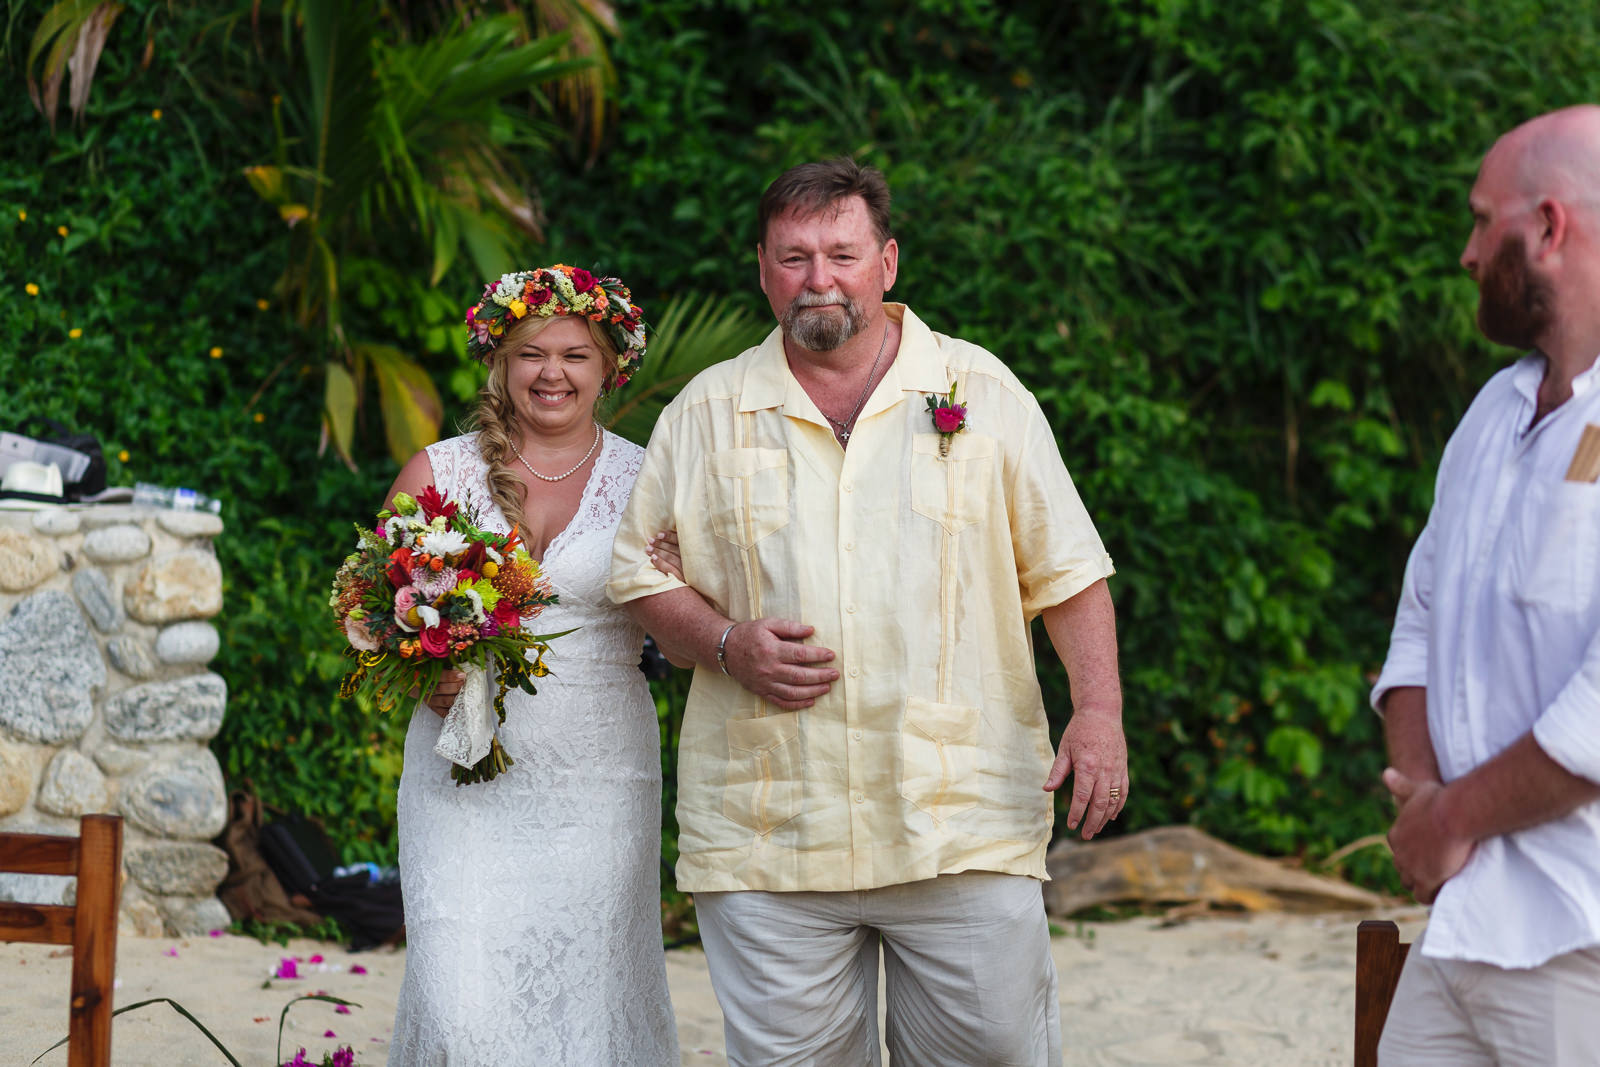 Bride walking with her dad down the aisle.